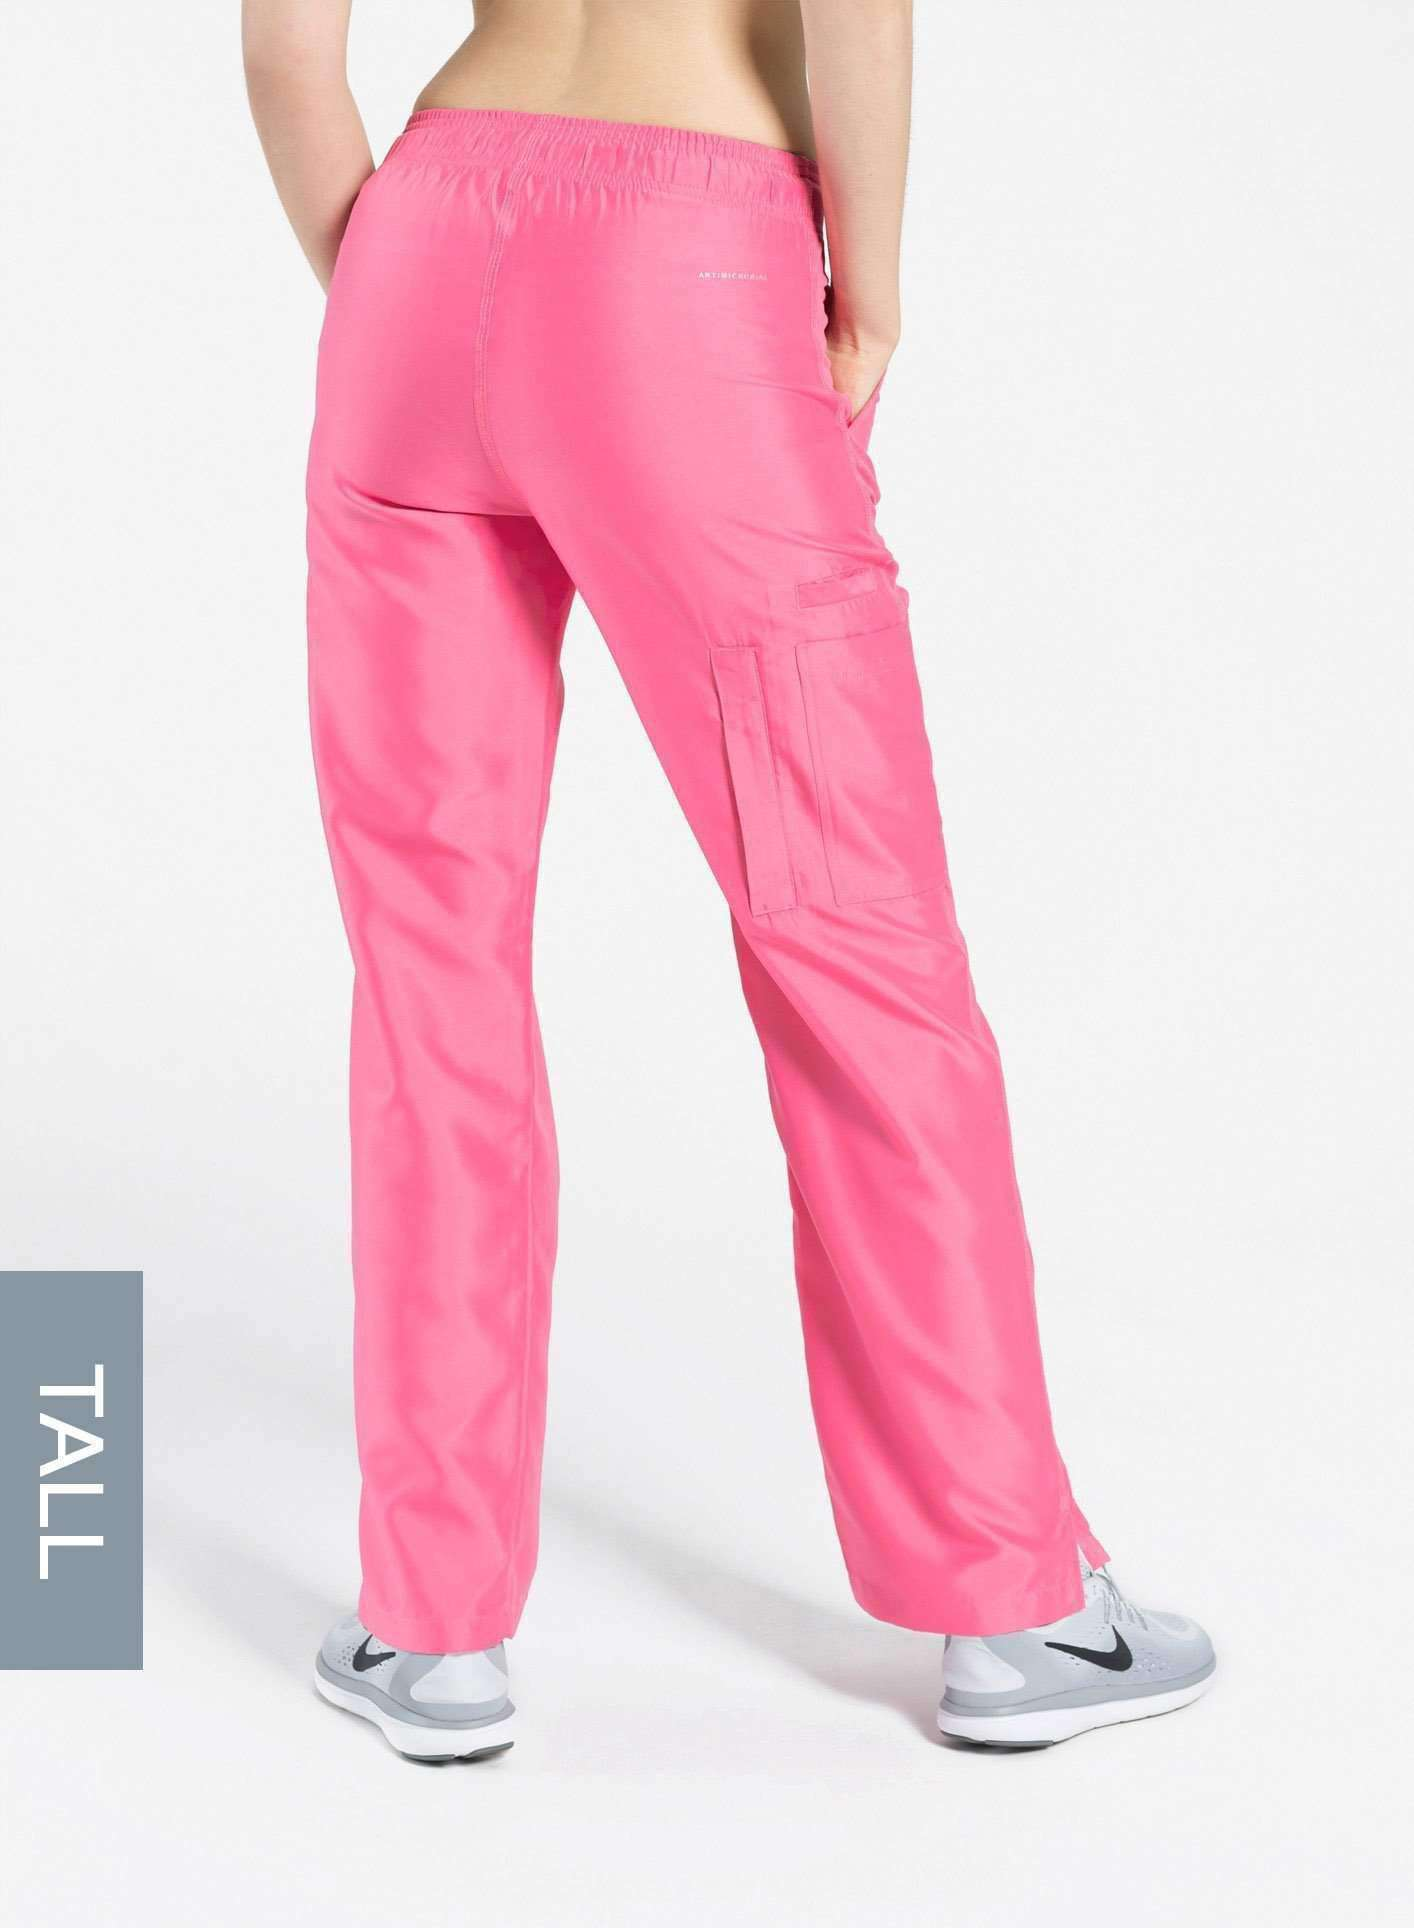 womens tall cargo pocket straight leg scrub pants pink Elements back